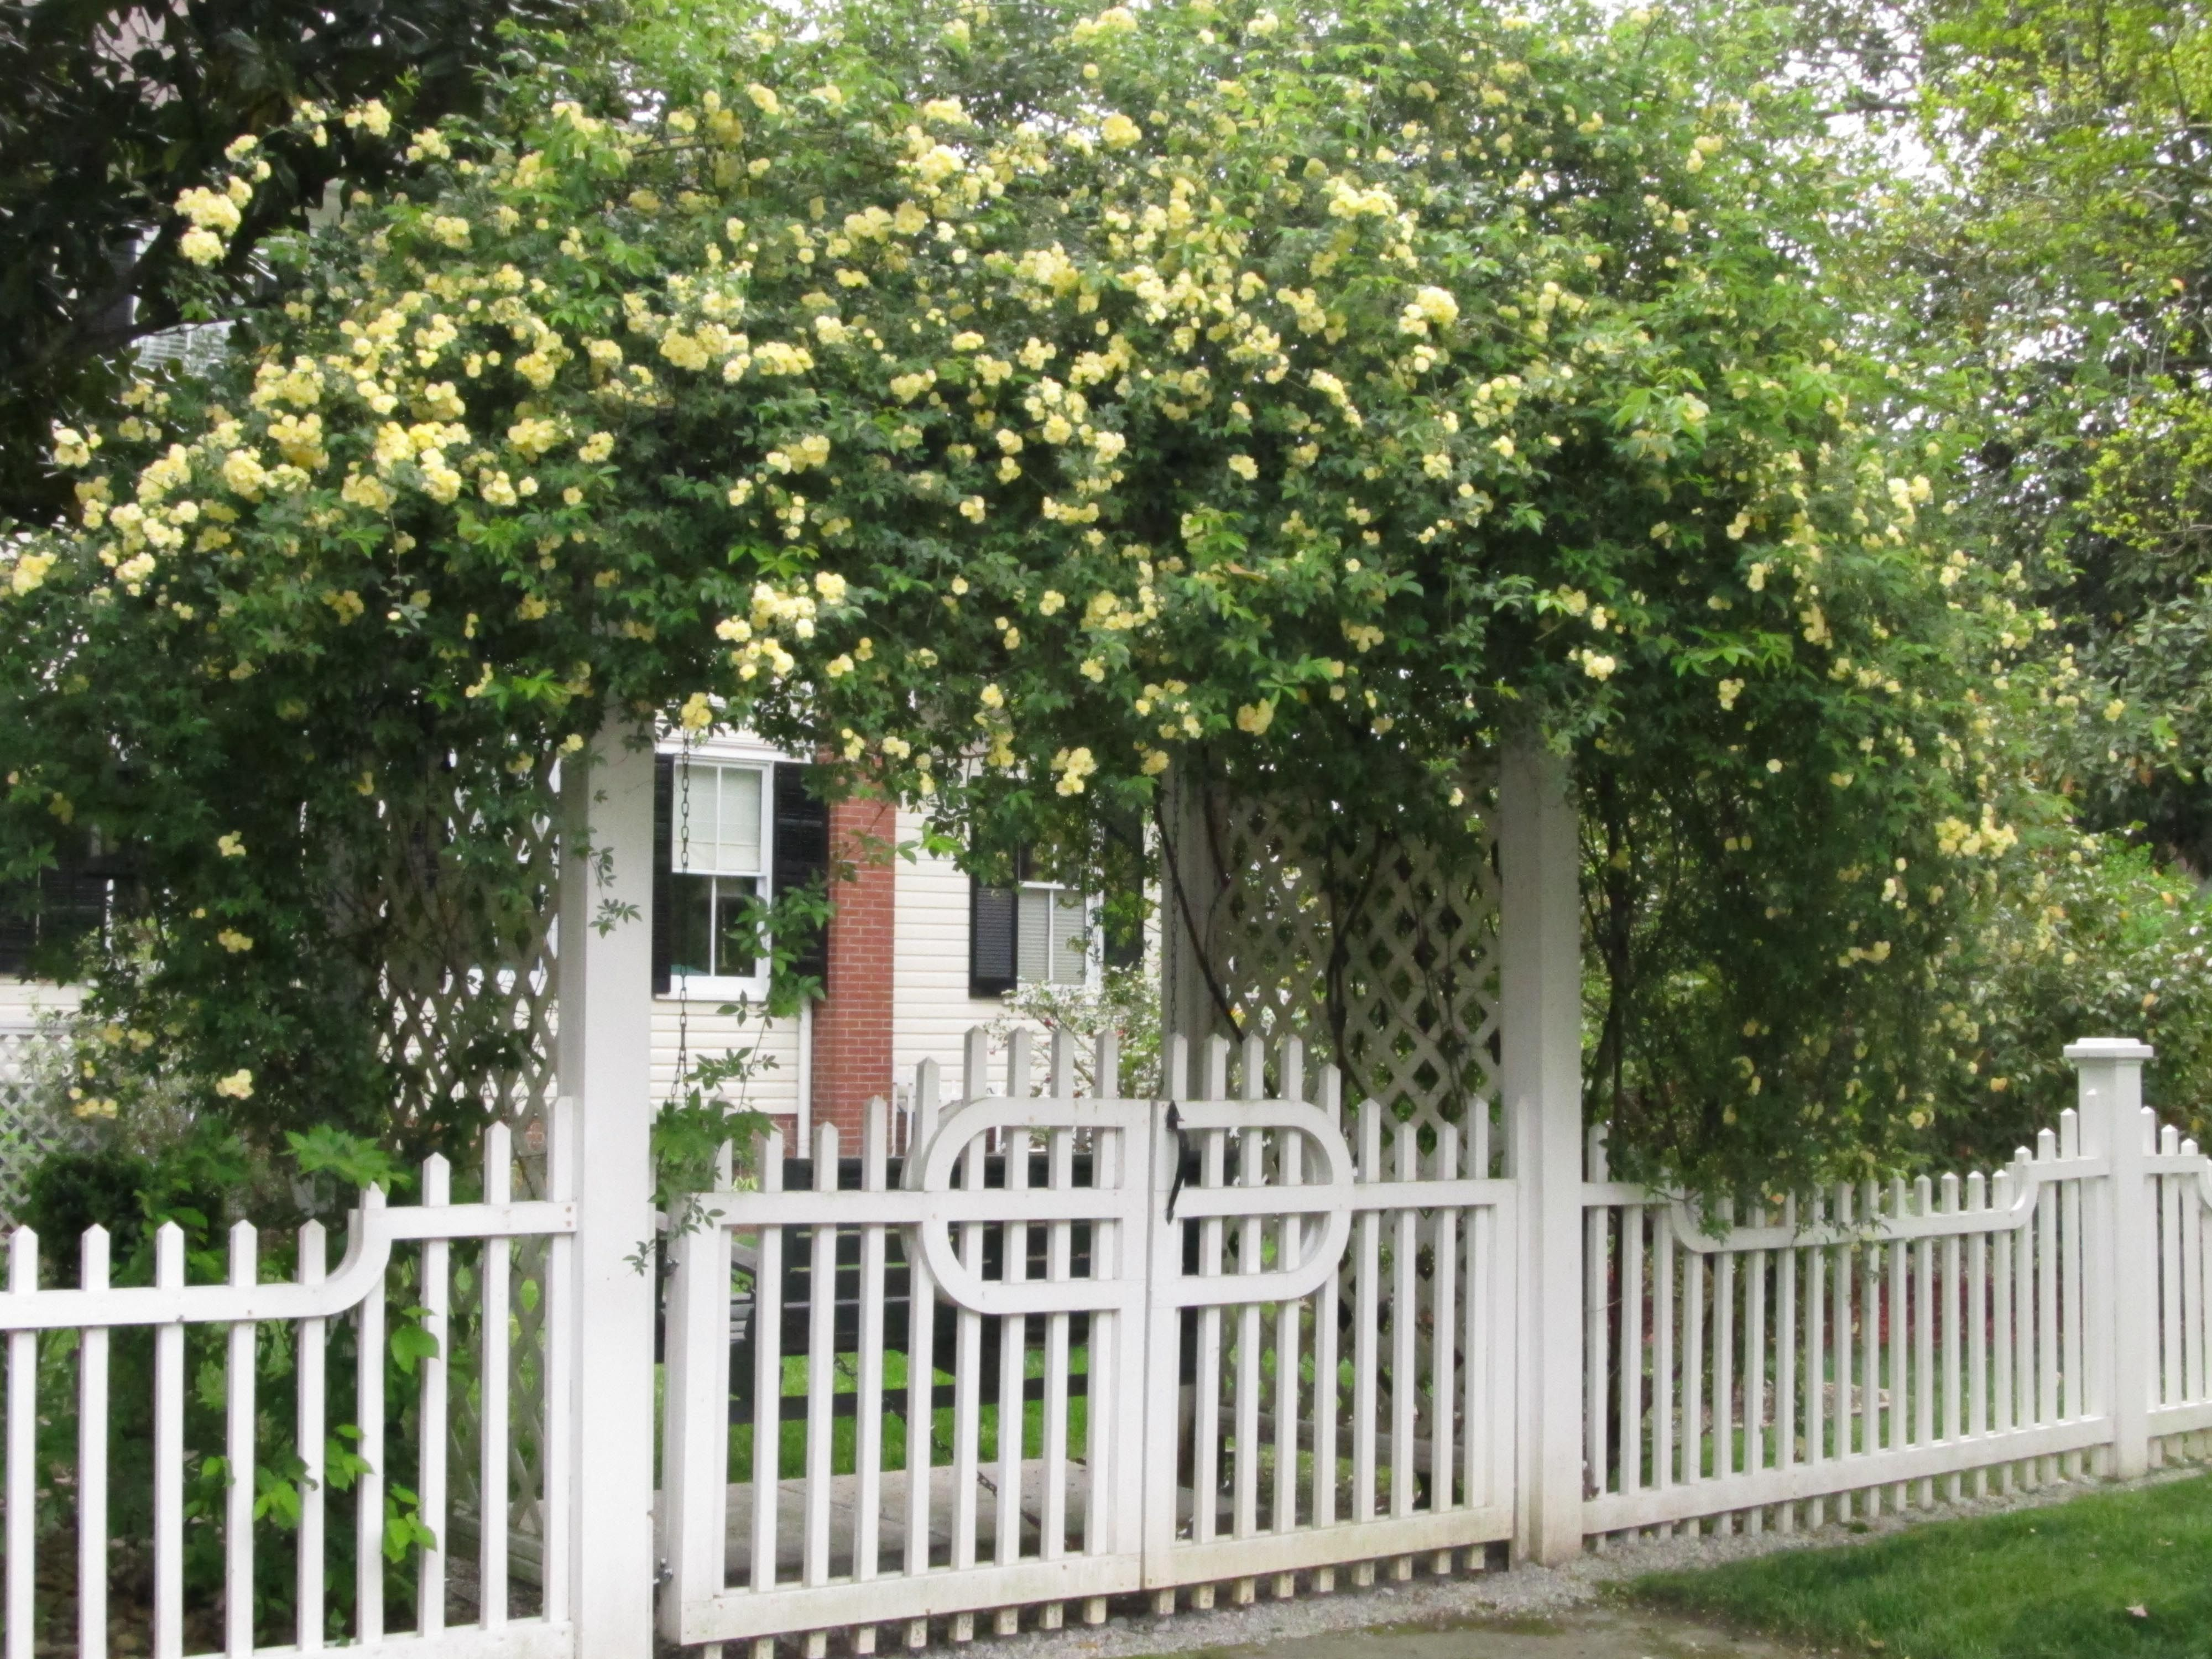 Climbing Rose Trellis Ideas Part - 42: Lady Banks Rose Trellis.. I Kind Of Like This Overhead Security Hedge.